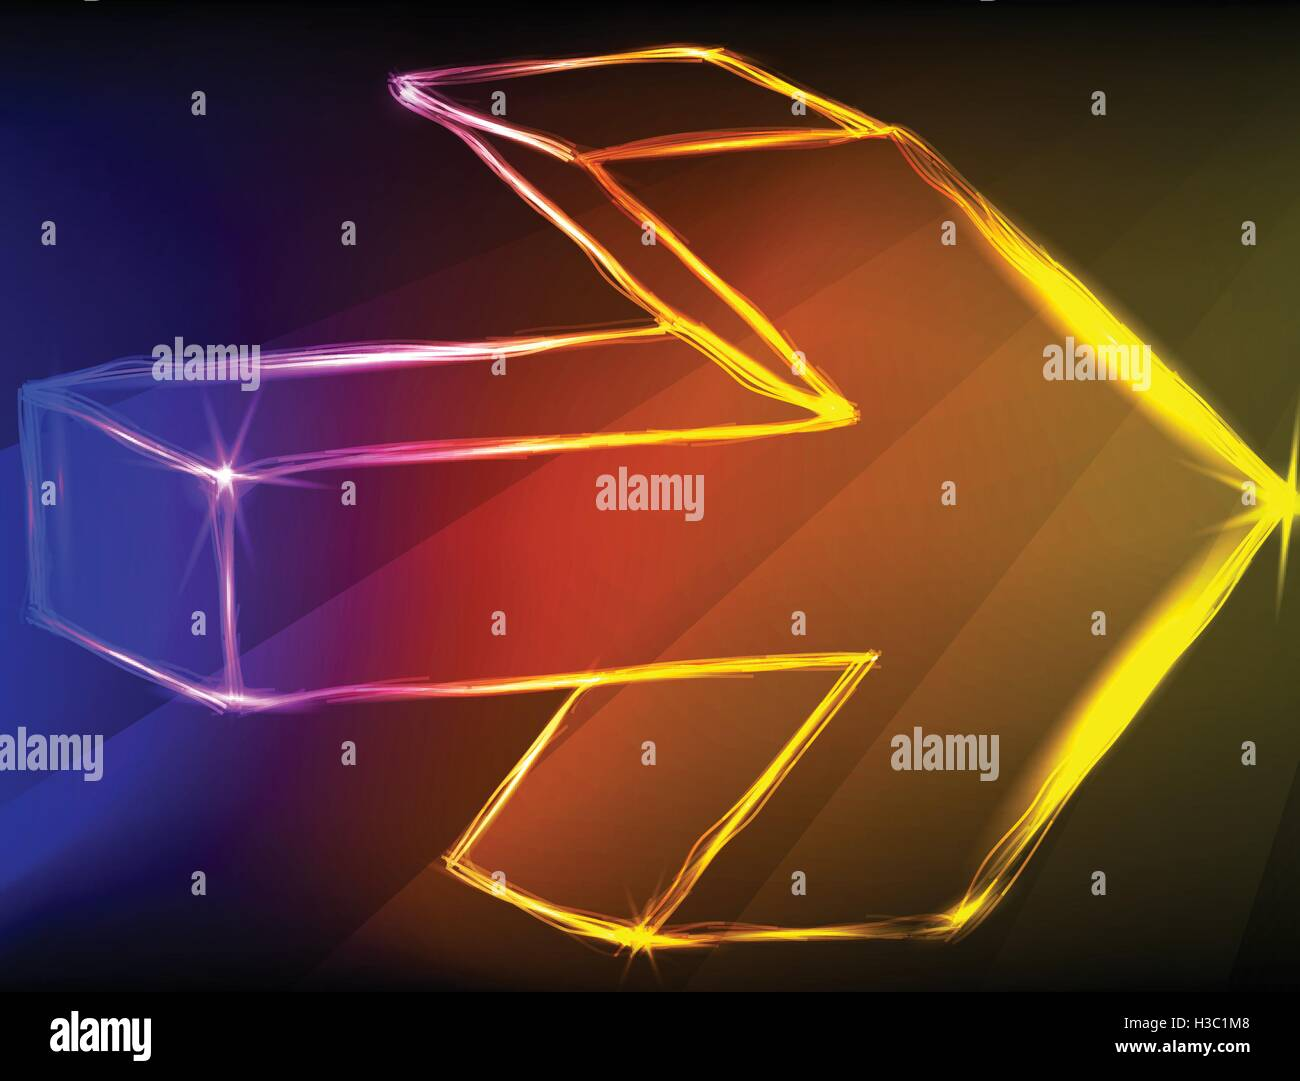 Abstract arrows light background. - Stock Image